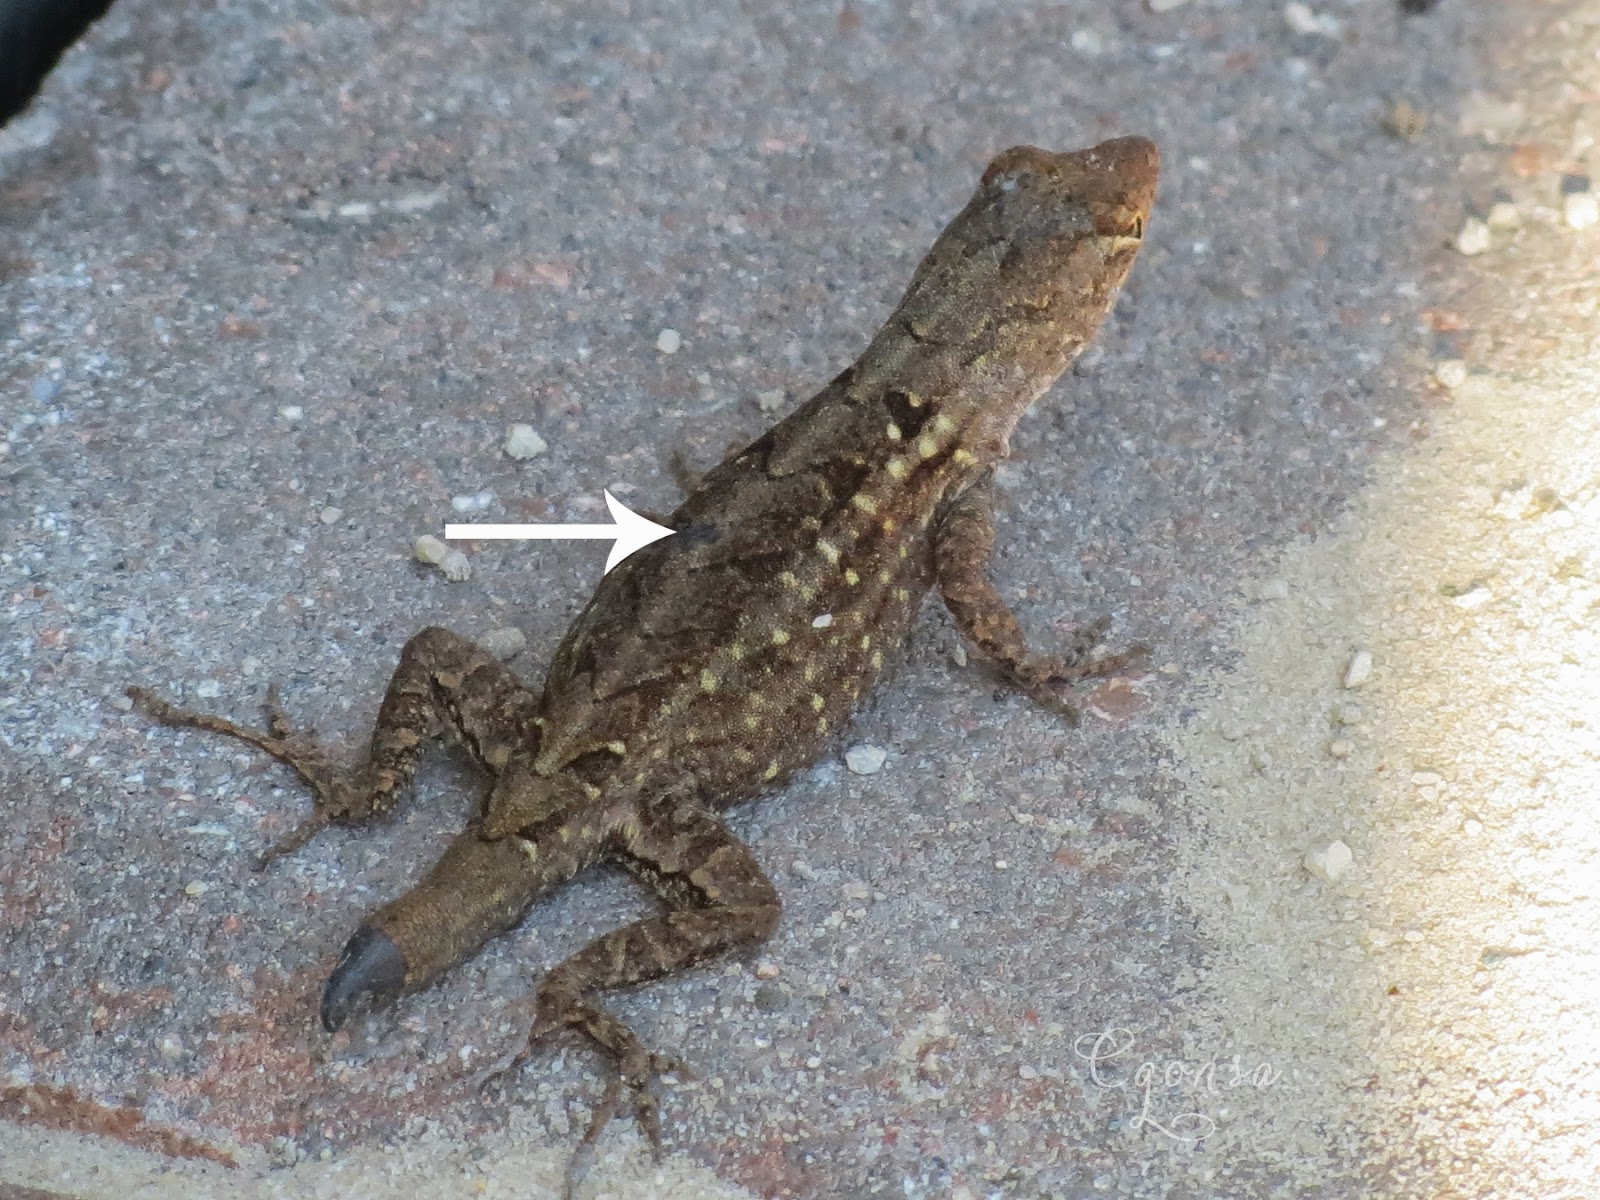 the backyard oasis brown anole lizard spinal cord injury